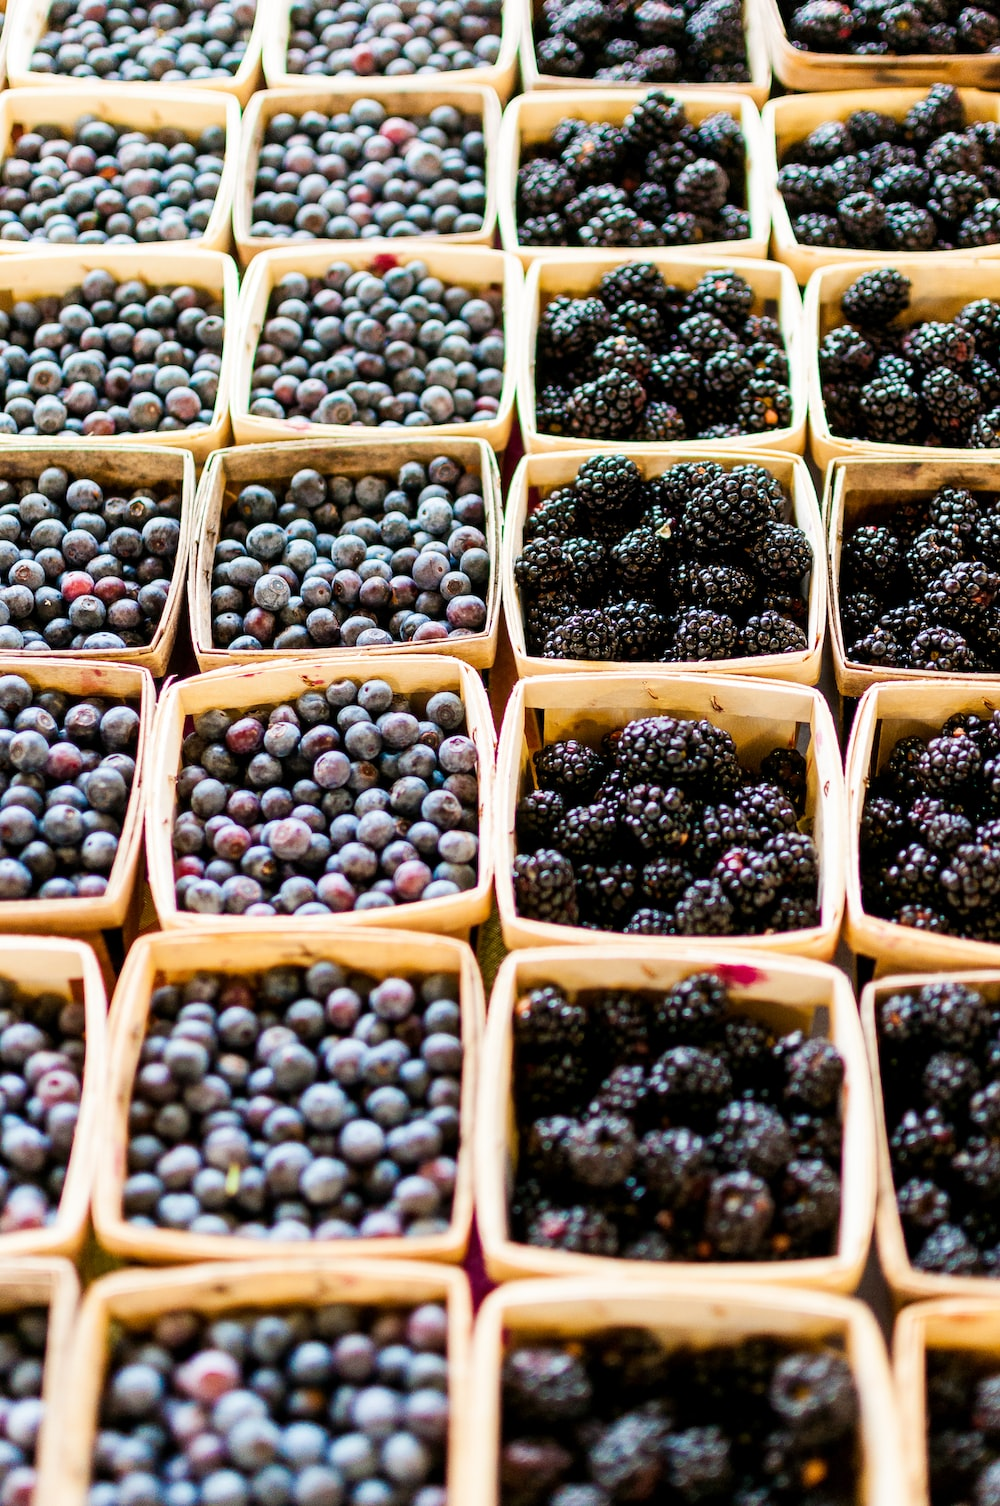 blackberry and blueberry fruits